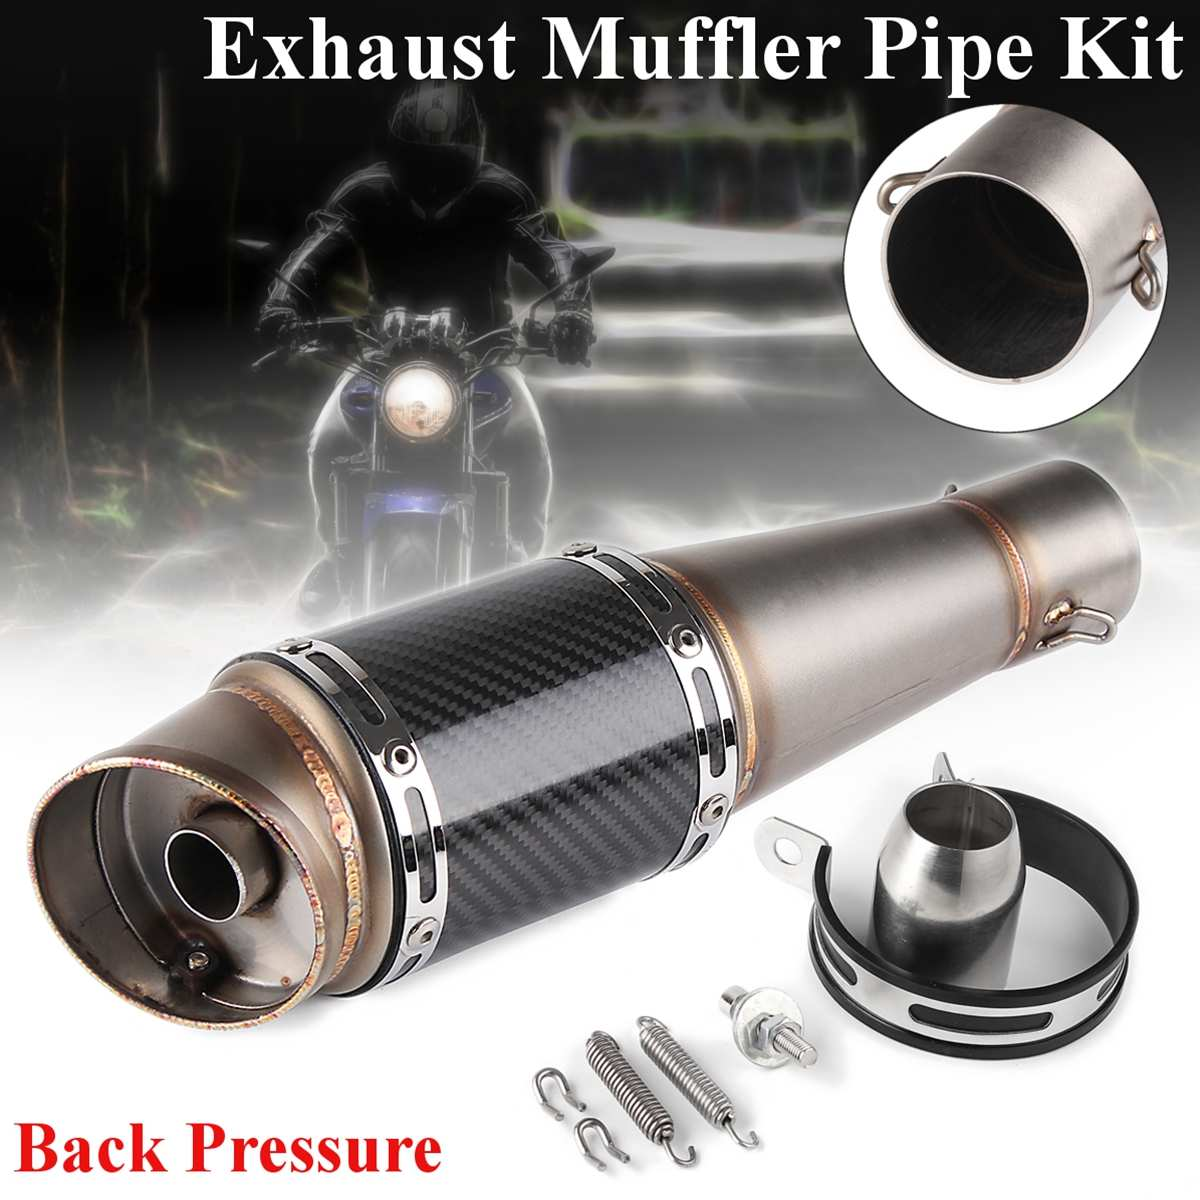 Left/Right Universal Motorcycle Exhaust Innet 38-51mm L:360mm Motorbike Exhaust Muffler Escape for Honda for Yamaha for kawasakiLeft/Right Universal Motorcycle Exhaust Innet 38-51mm L:360mm Motorbike Exhaust Muffler Escape for Honda for Yamaha for kawasaki